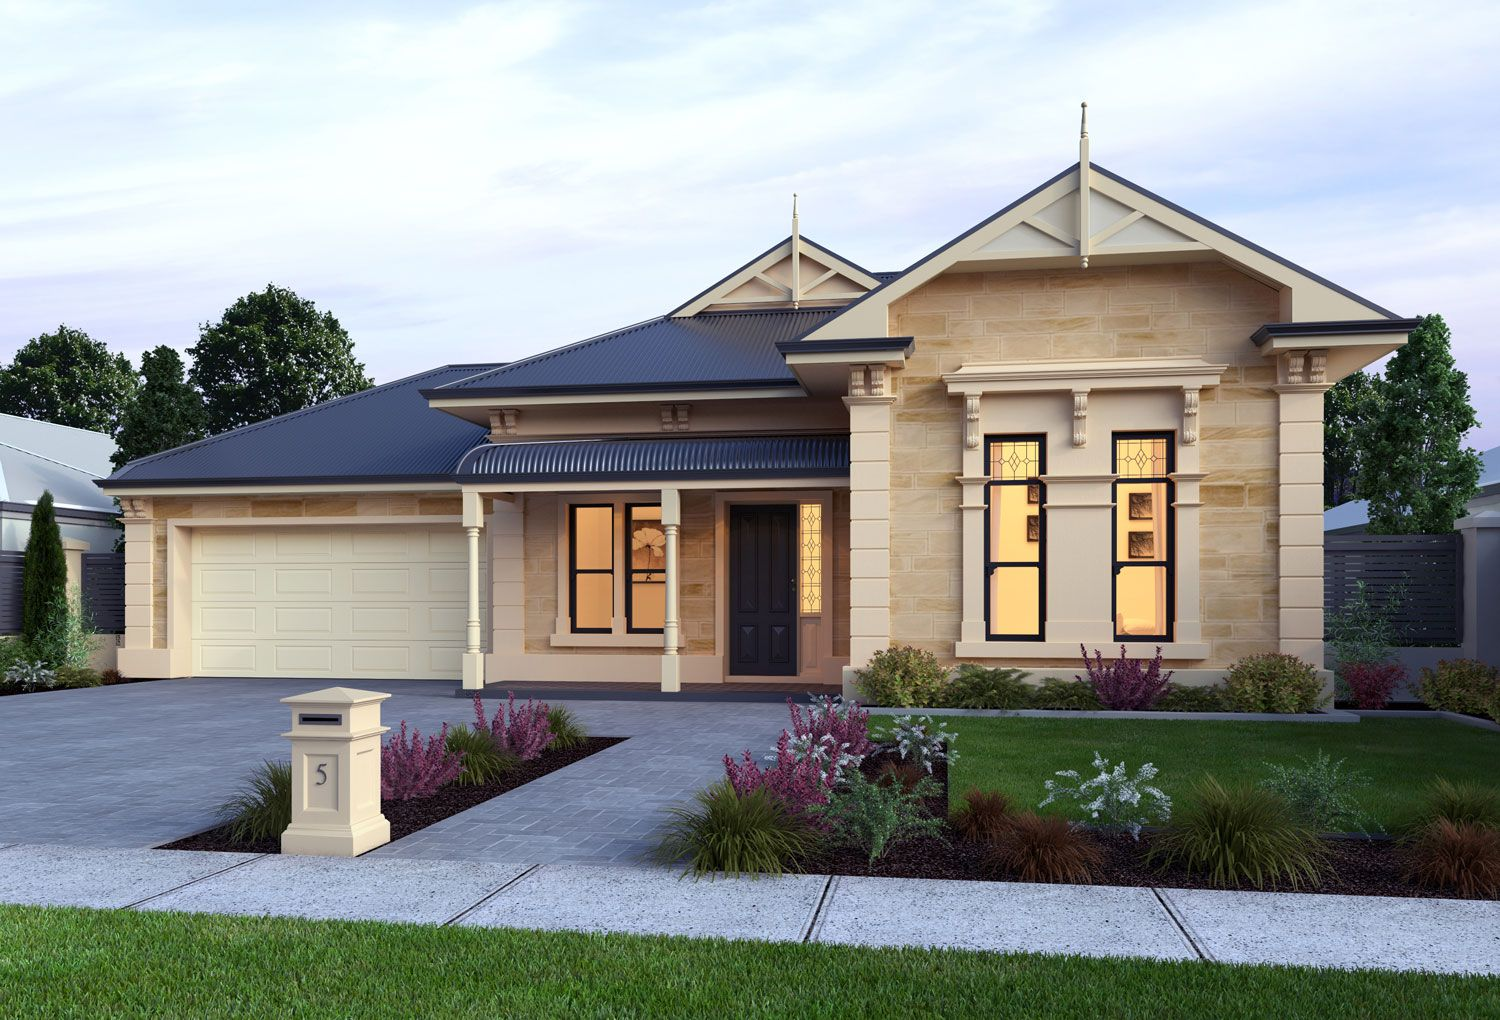 Sandstone House Google Search Facade House Colonial House Exteriors Craftsman House Plans